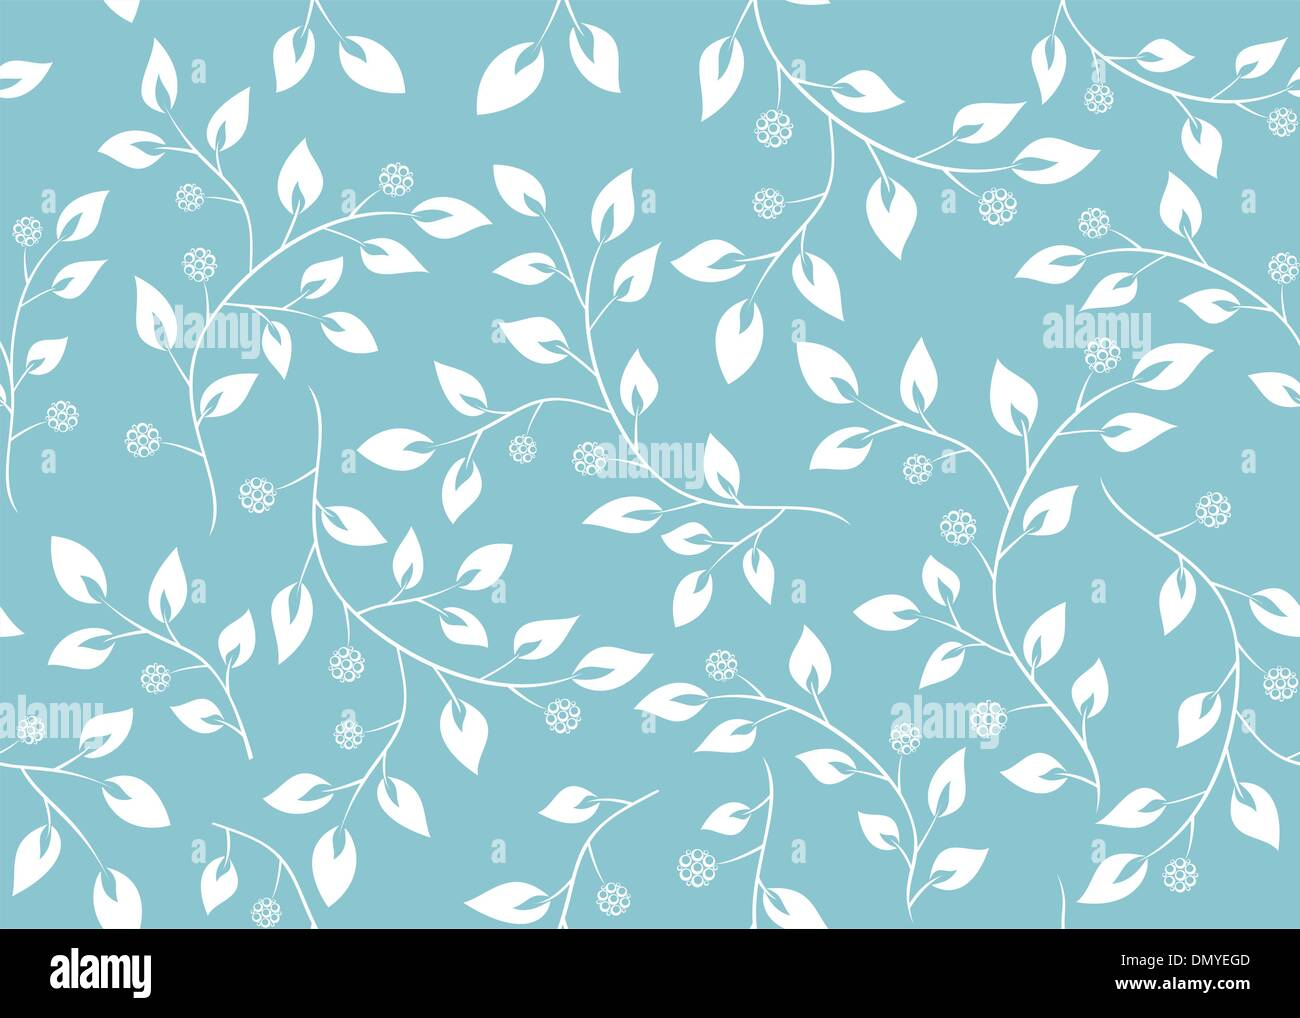 vector seamless light blue floral texture - Stock Image